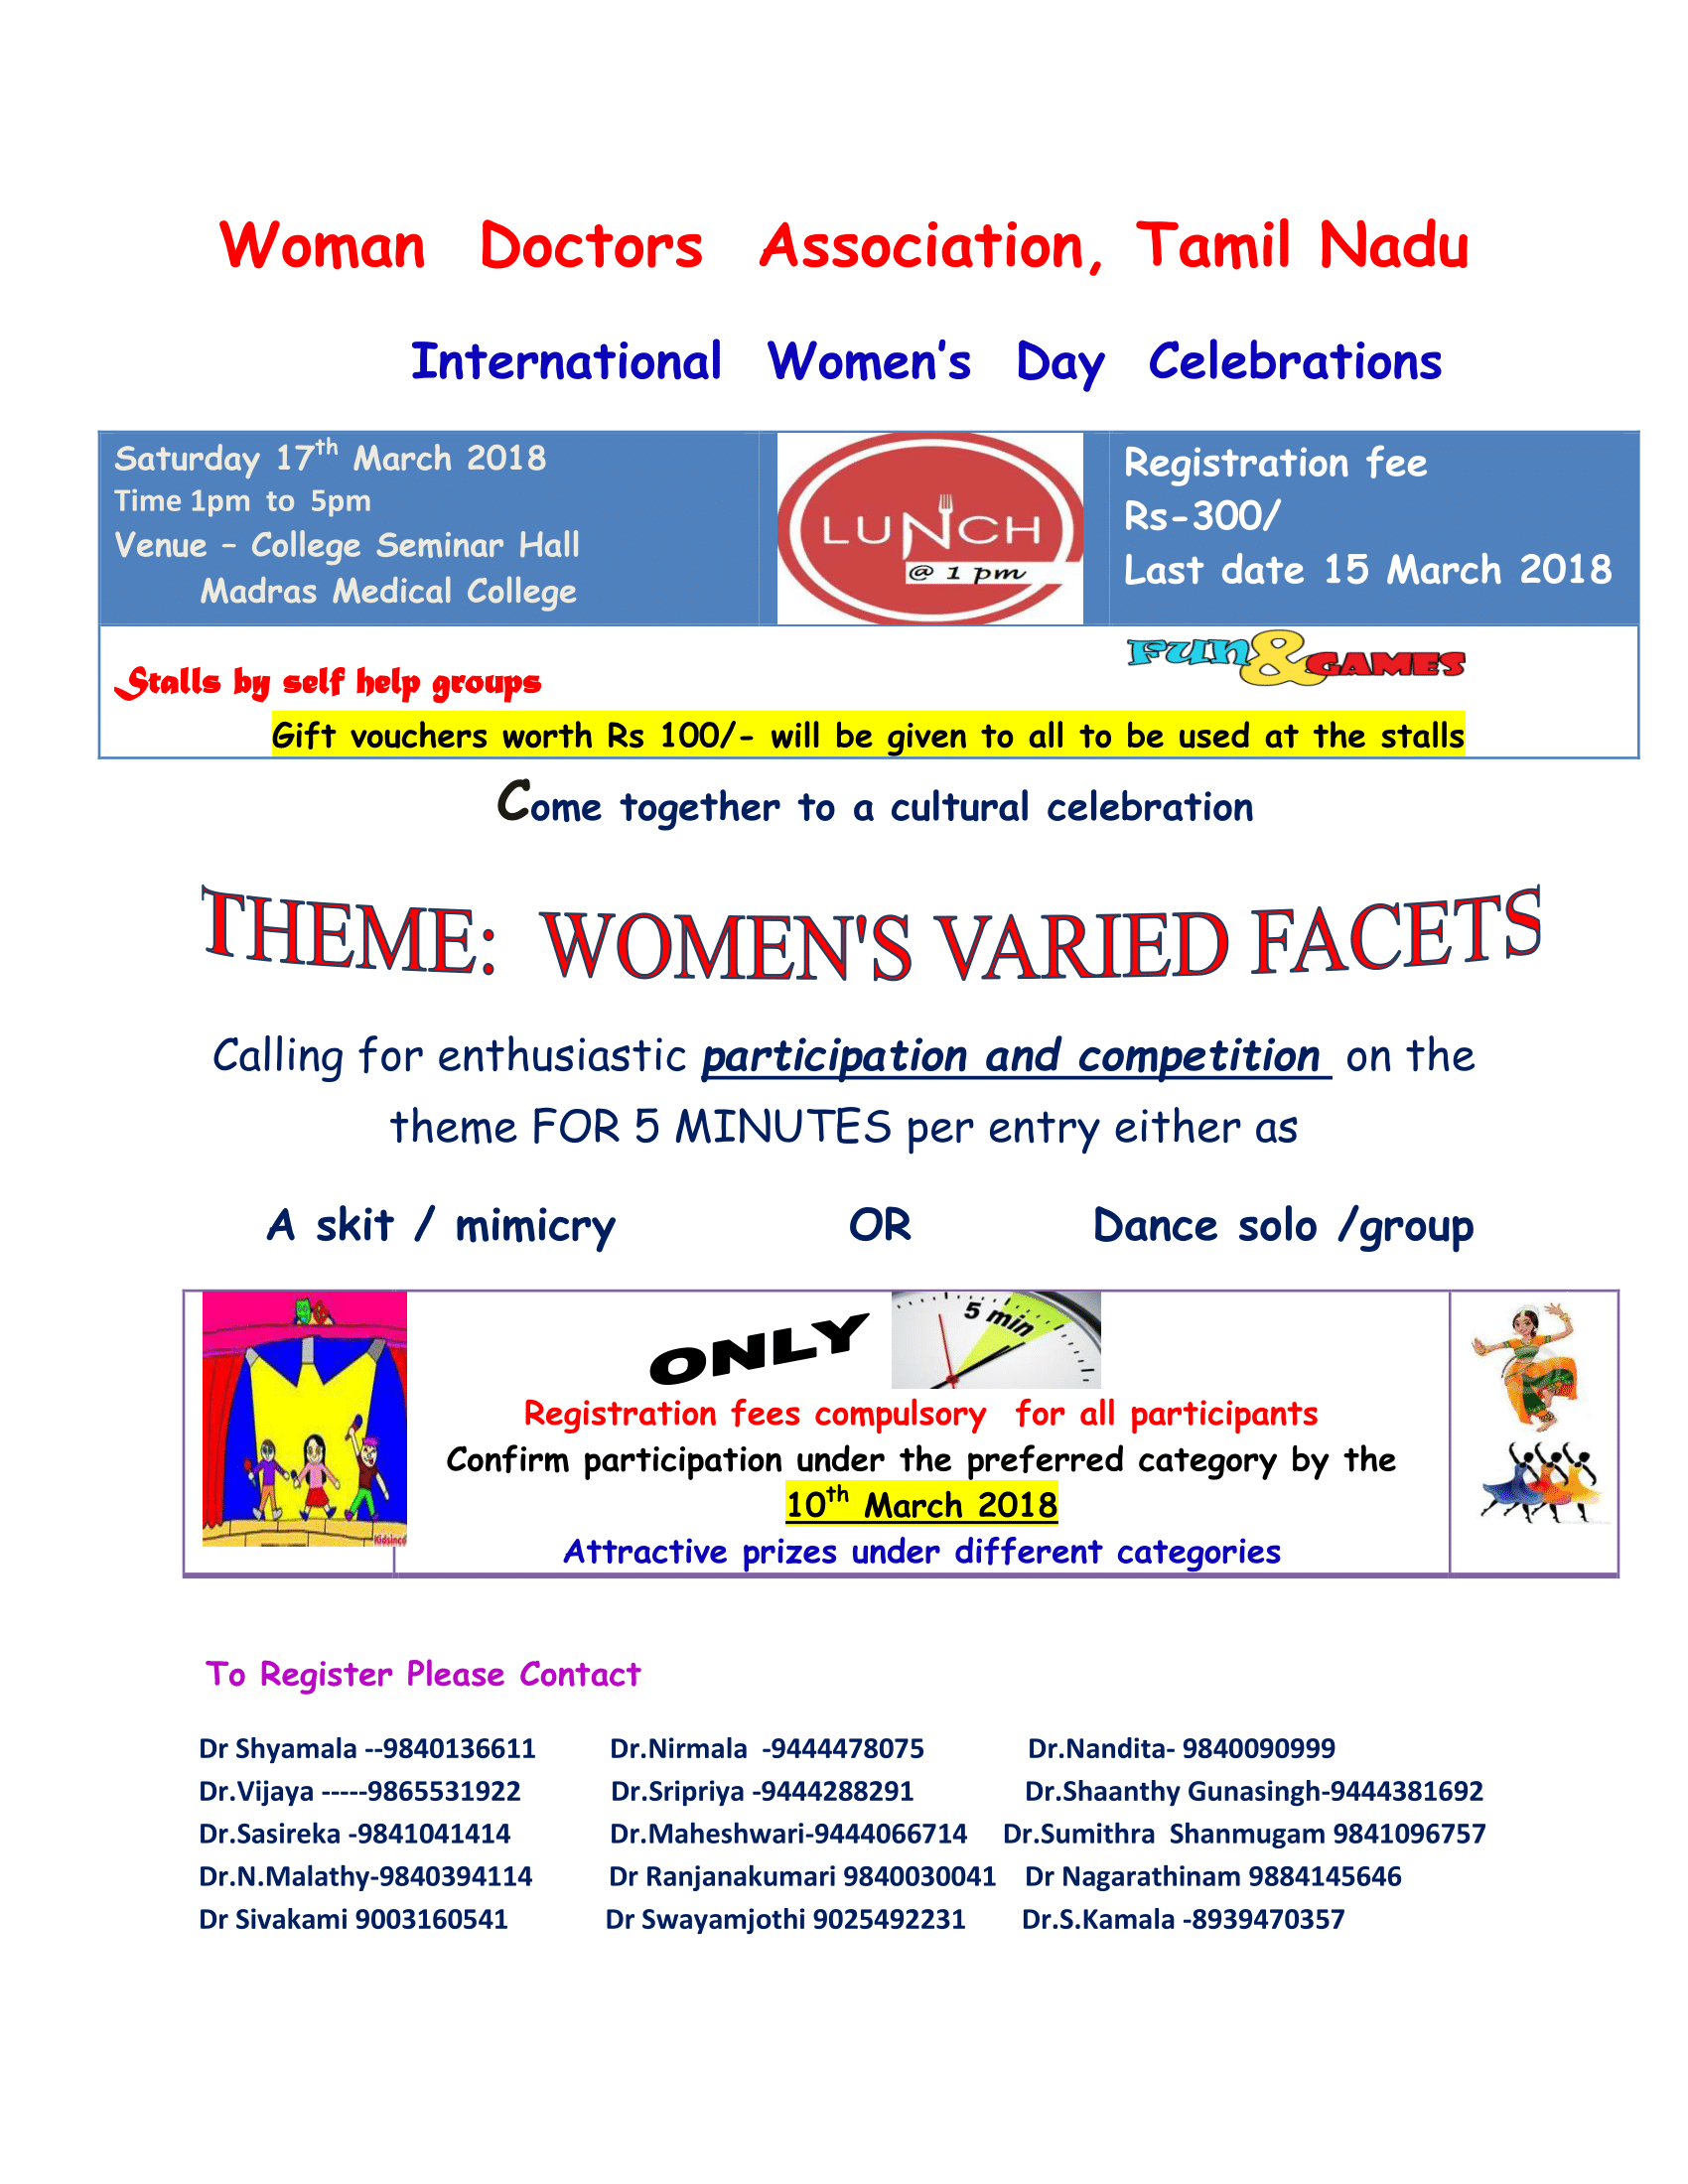 Woman Doctors Association, Tamil Nadu International Women's Day Celebrations